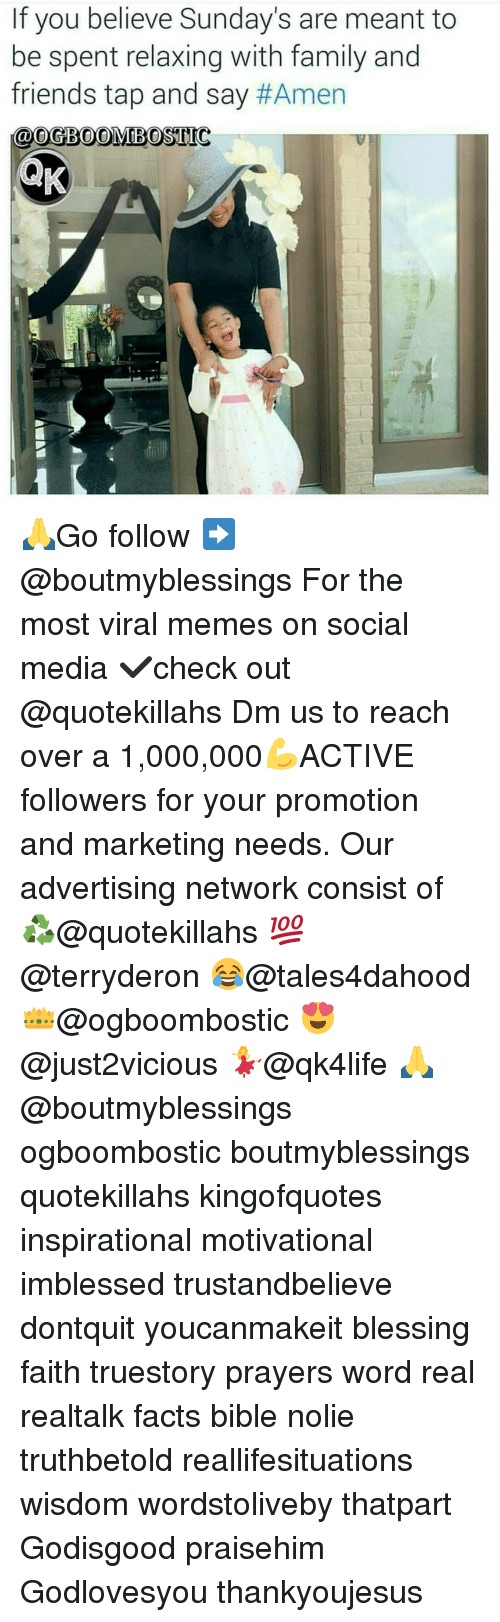 Memes, 🤖, and Media: If you believe Sunday's are meant to  be spent relaxing with family and  friends tap and say  #Amen  @OGBOOMIBOSTIC 🙏Go follow ➡@boutmyblessings For the most viral memes on social media ✔check out @quotekillahs Dm us to reach over a 1,000,000💪ACTIVE followers for your promotion and marketing needs. Our advertising network consist of ♻@quotekillahs 💯@terryderon 😂@tales4dahood 👑@ogboombostic 😍@just2vicious 💃@qk4life 🙏@boutmyblessings ogboombostic boutmyblessings quotekillahs kingofquotes inspirational motivational imblessed trustandbelieve dontquit youcanmakeit blessing faith truestory prayers word real realtalk facts bible nolie truthbetold reallifesituations wisdom wordstoliveby thatpart Godisgood praisehim Godlovesyou thankyoujesus